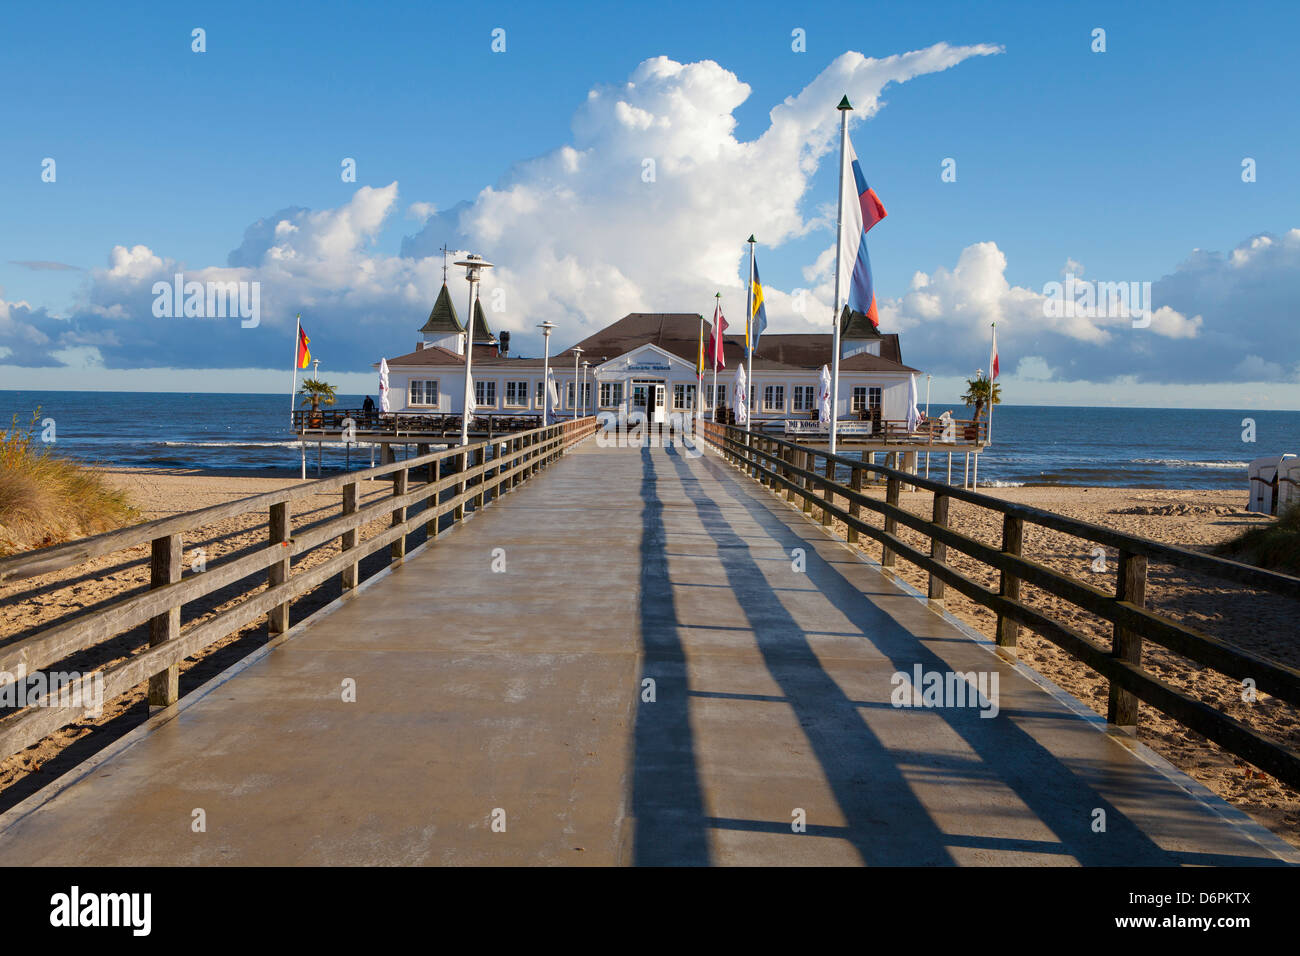 Historic Pier in Ahlbeck on the Island of Usedom, Baltic Coast, Mecklenburg-Vorpommern, Germany, Europe - Stock Image